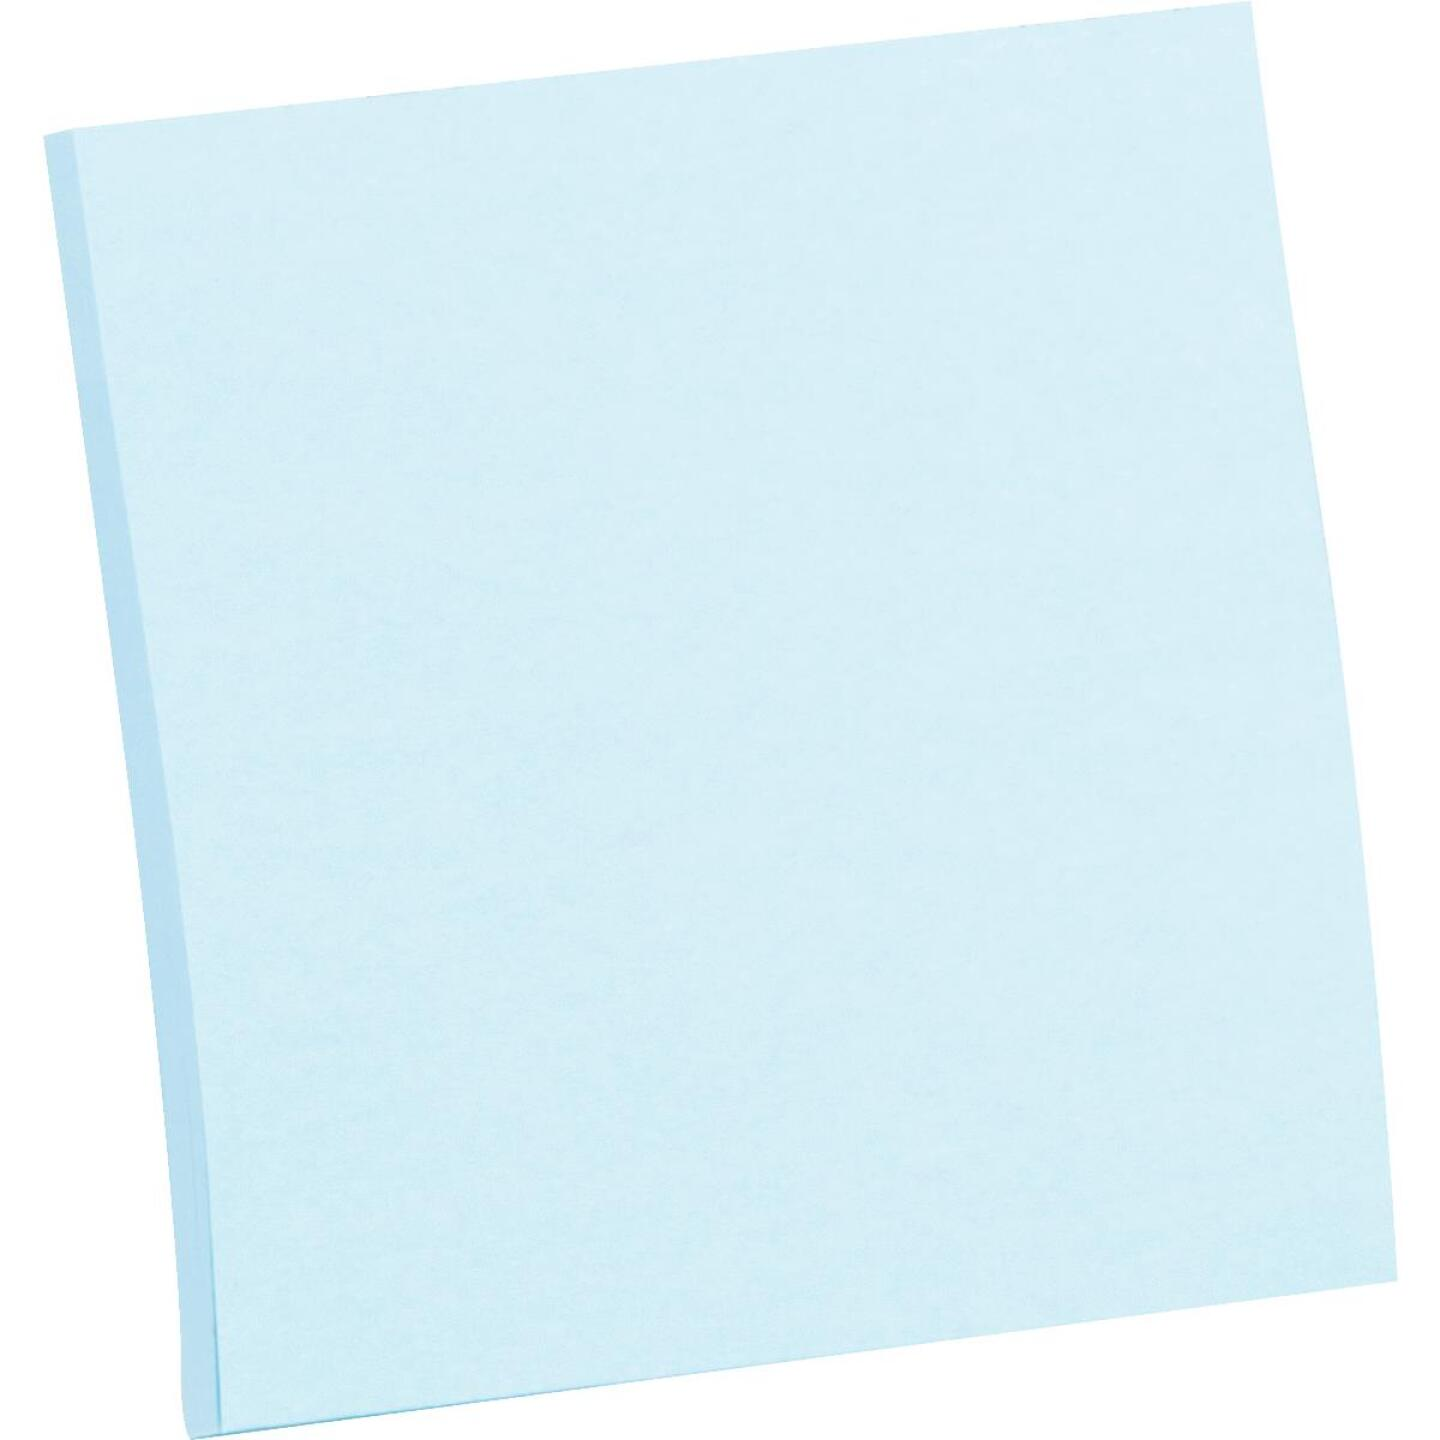 Post-It 2-7/8 In. X 2-7/8 In. Assorted Colors Self-Stick Note Pad (4-Pack) Image 2